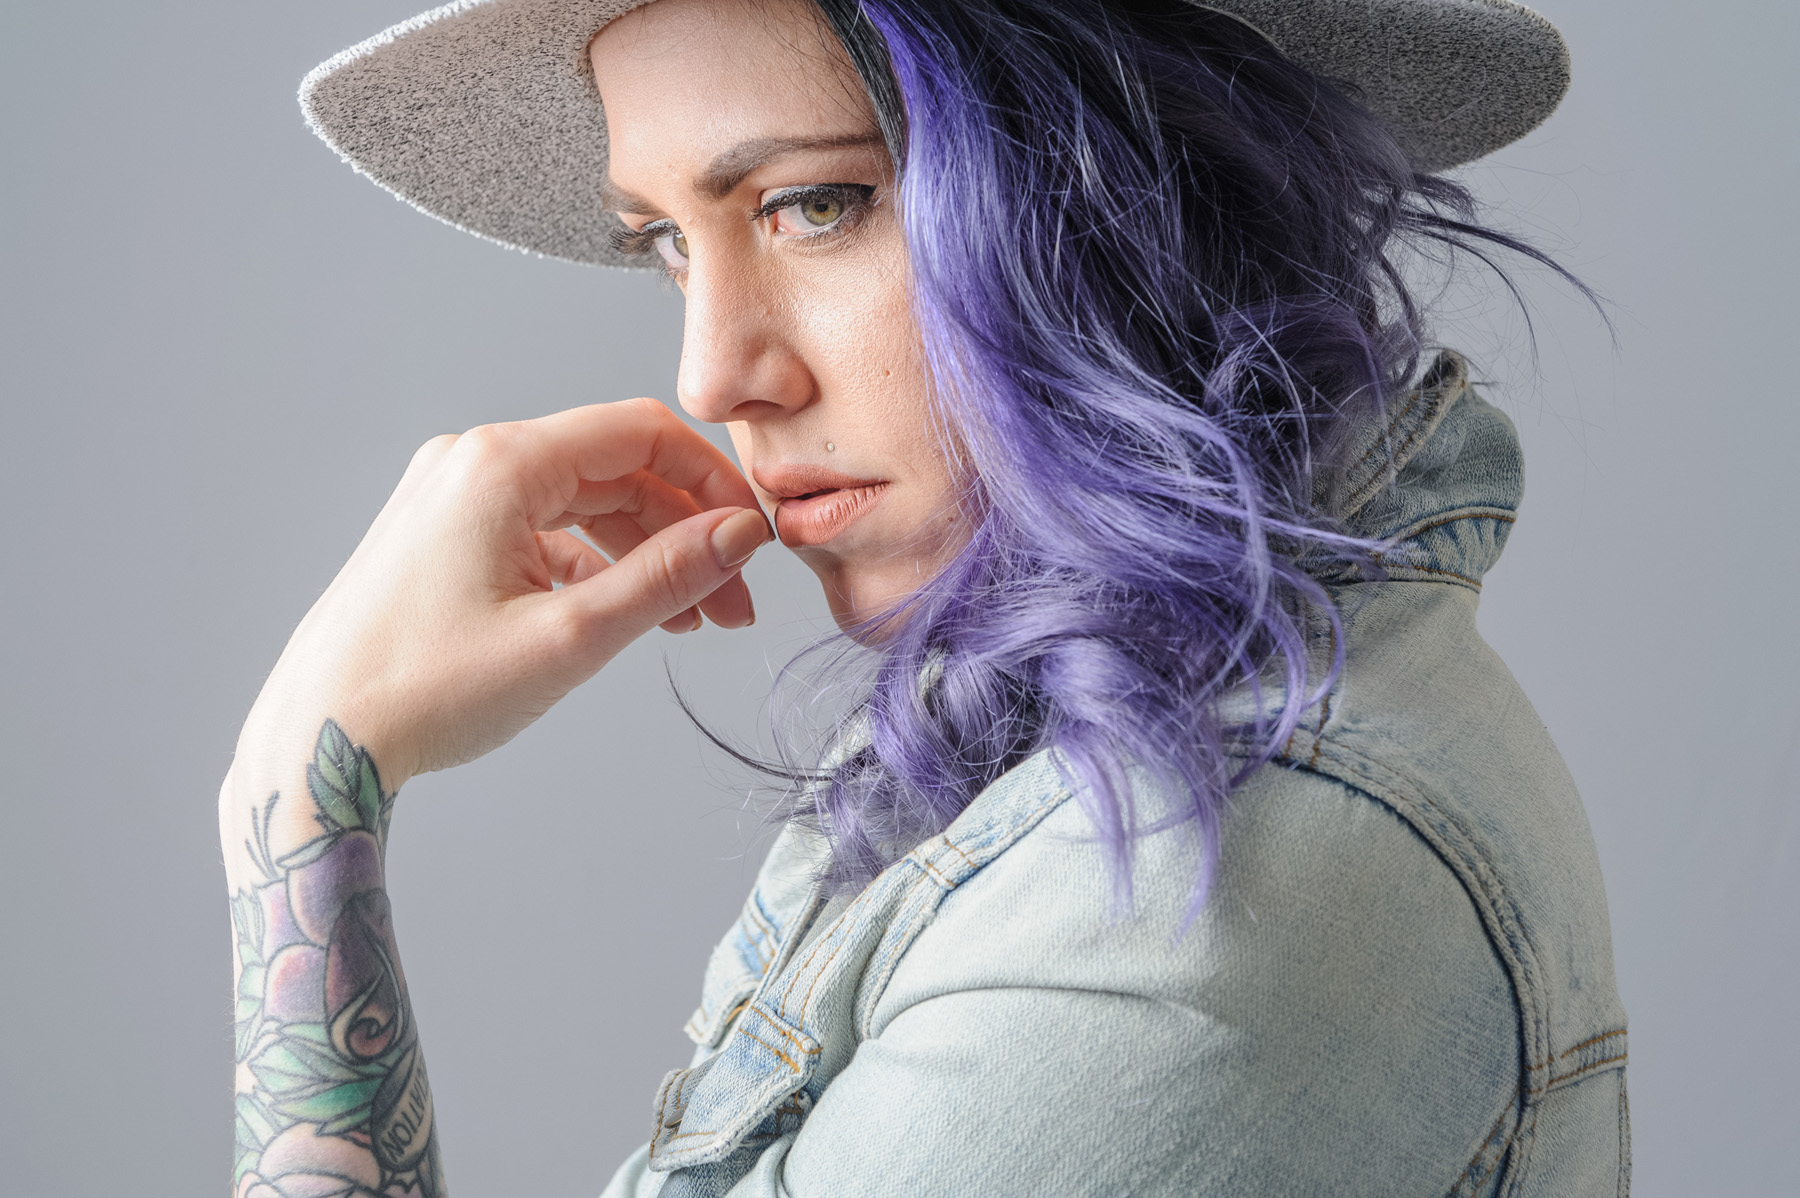 a portrait of Christina with purple hair and wearing a wide brim grey hat and faded blue jean jacket.